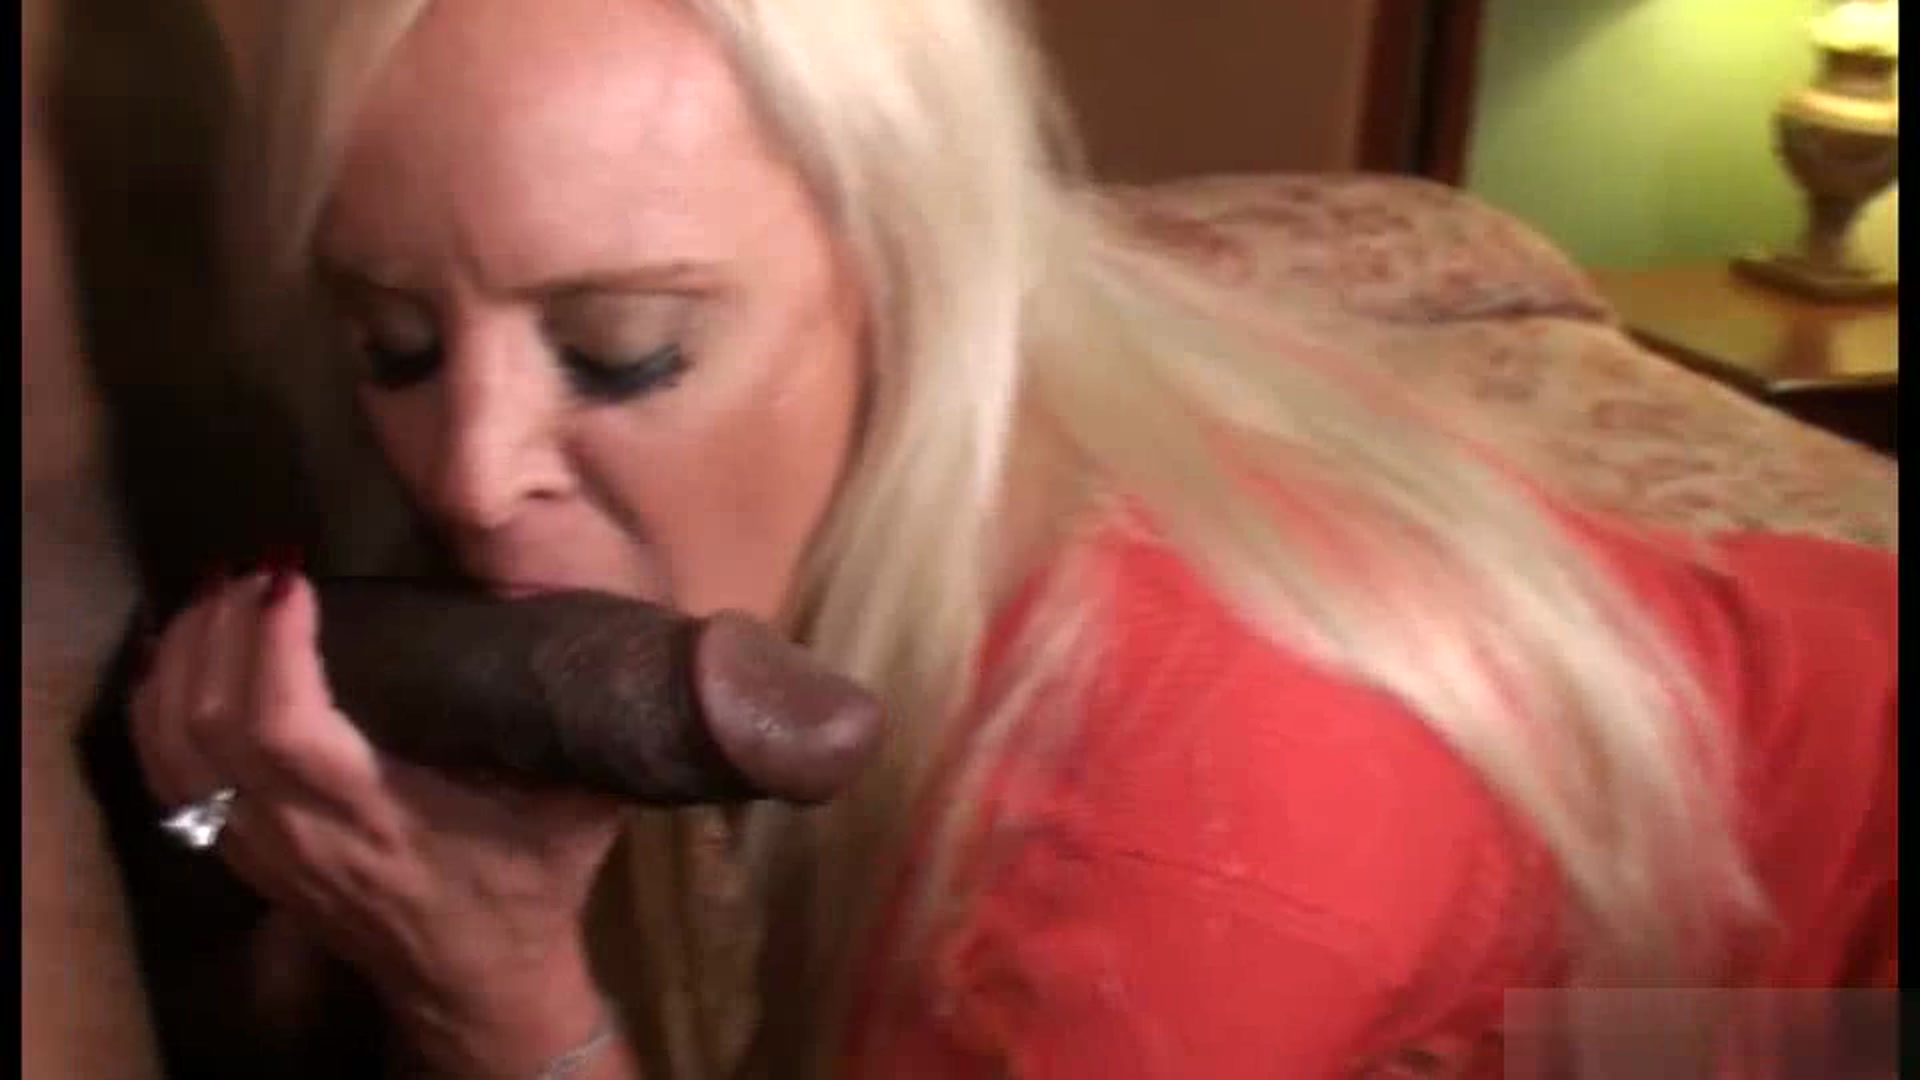 Final, Mature interracial anal sex pic